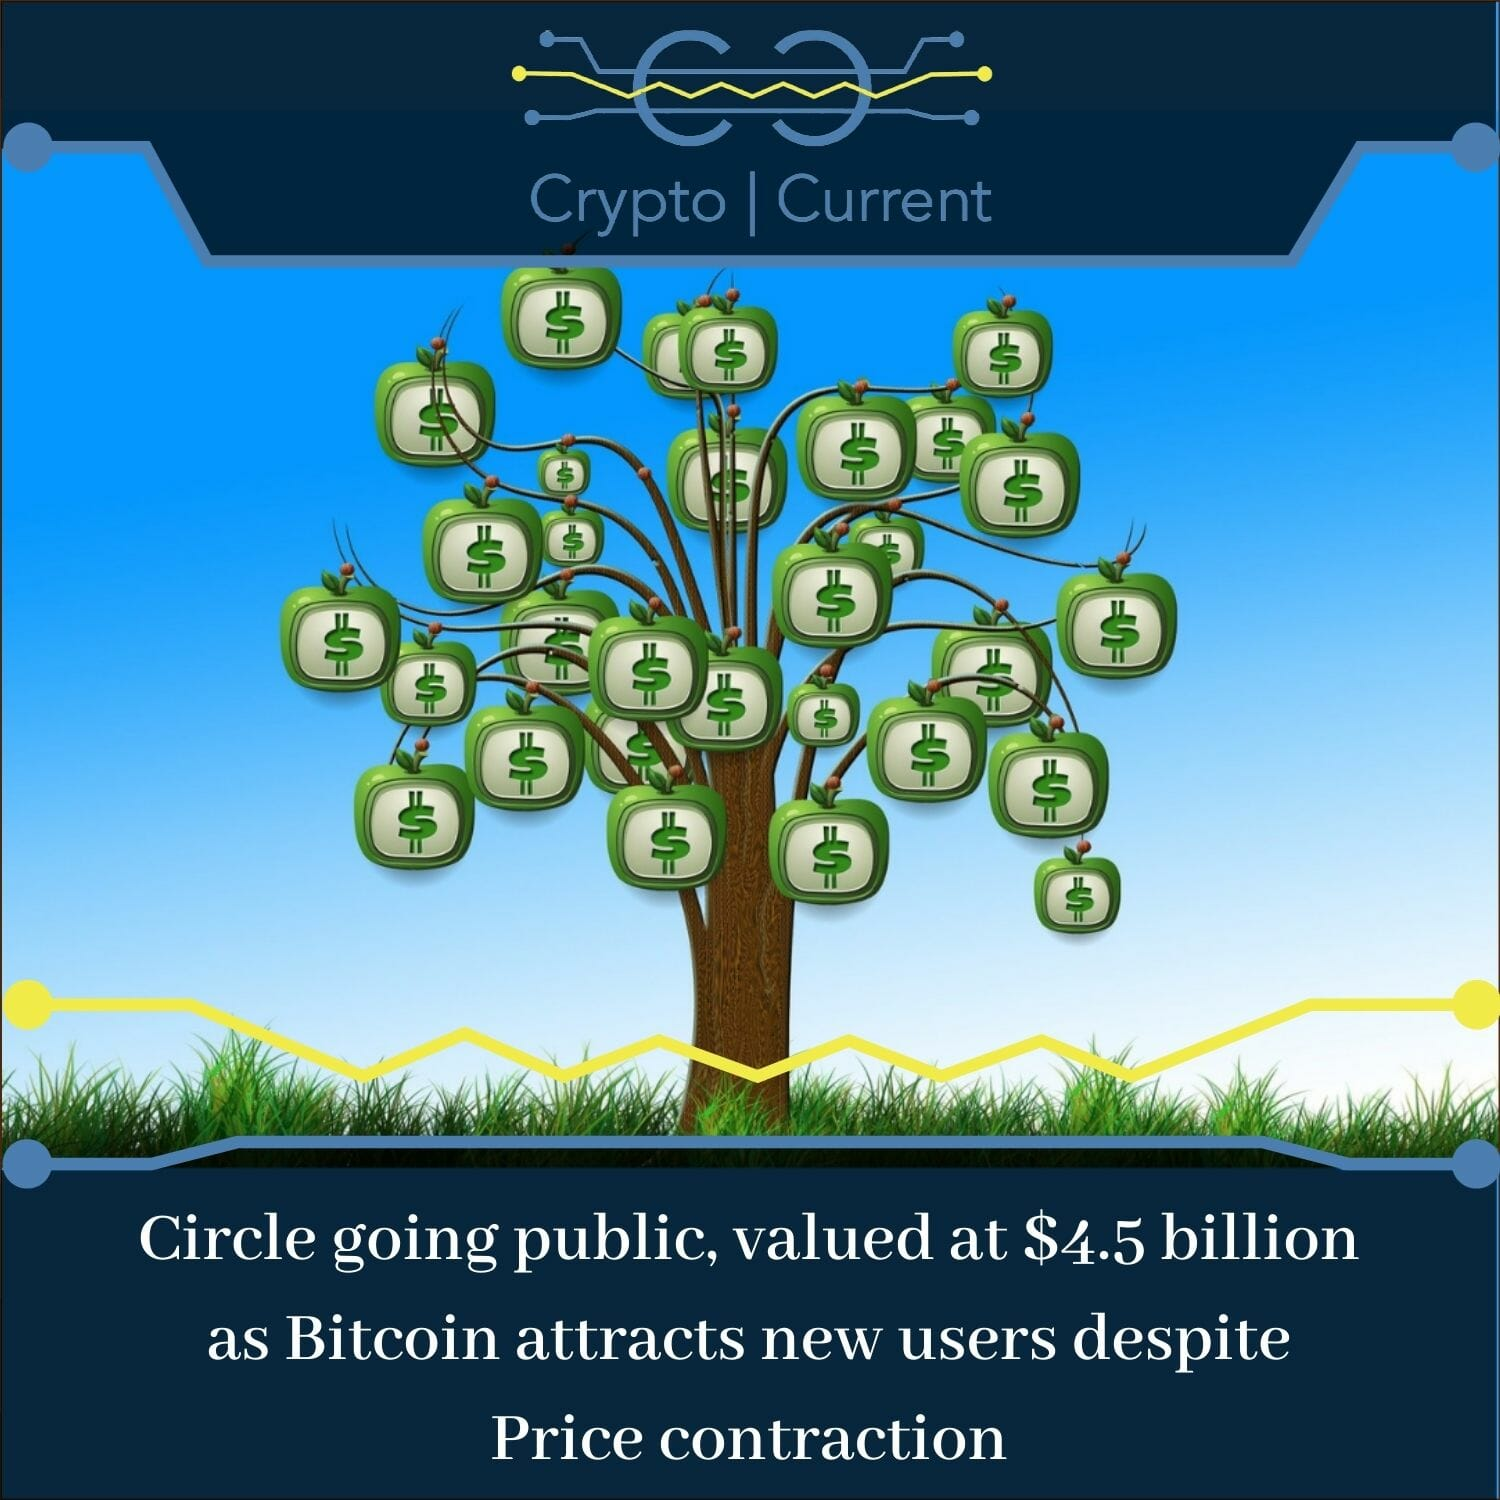 cryptocurrency predictions Circle going public, valued at $4.5 billion as Bitcoin attracts new users despite Price contraction